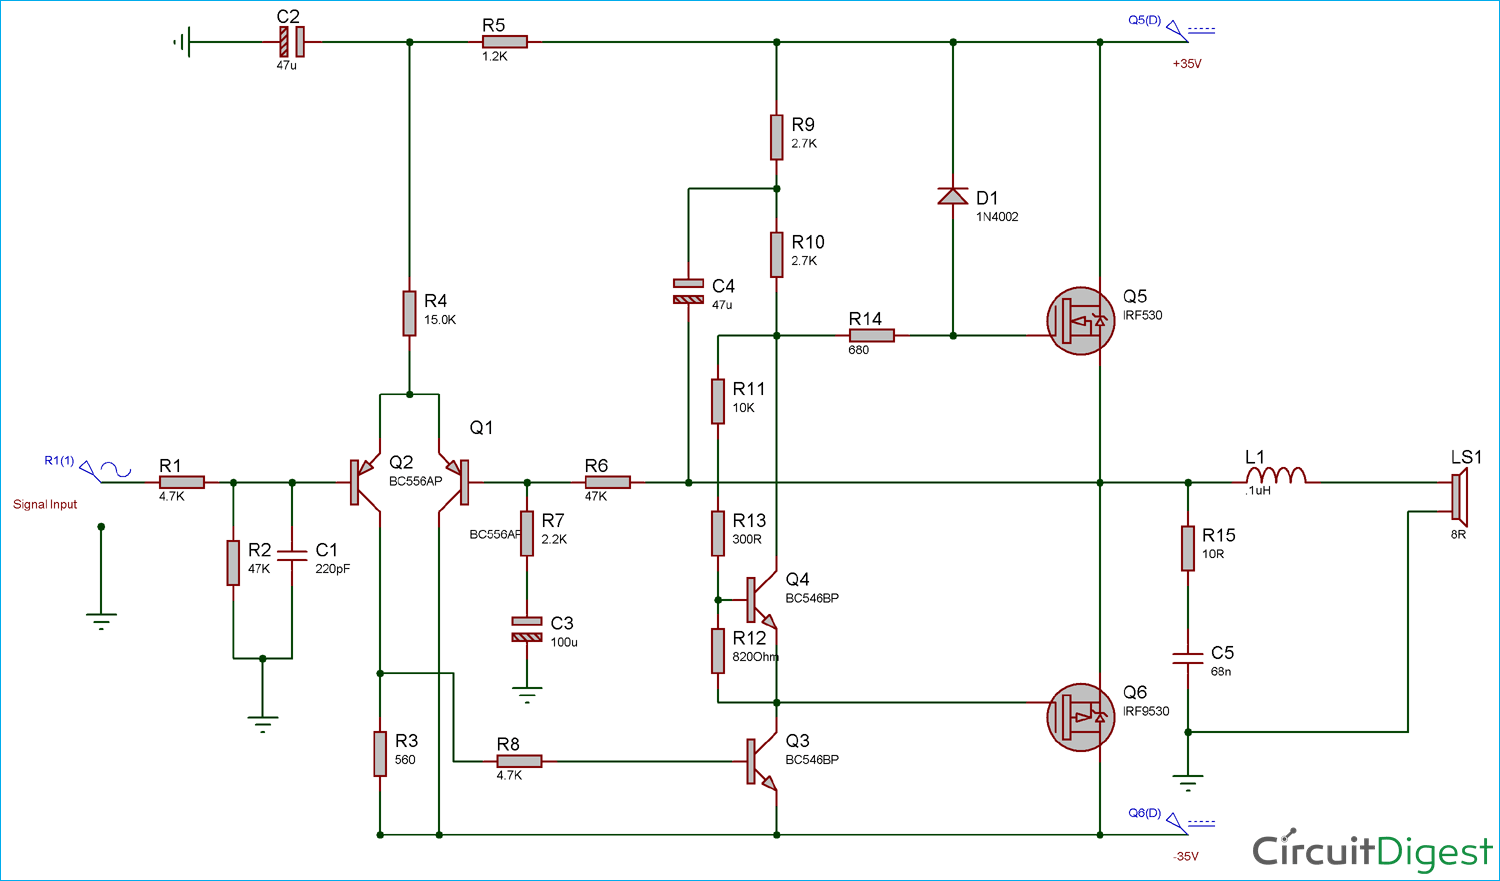 Circuit Diagram for 50 Watt Power Amplifier using MOSFETs